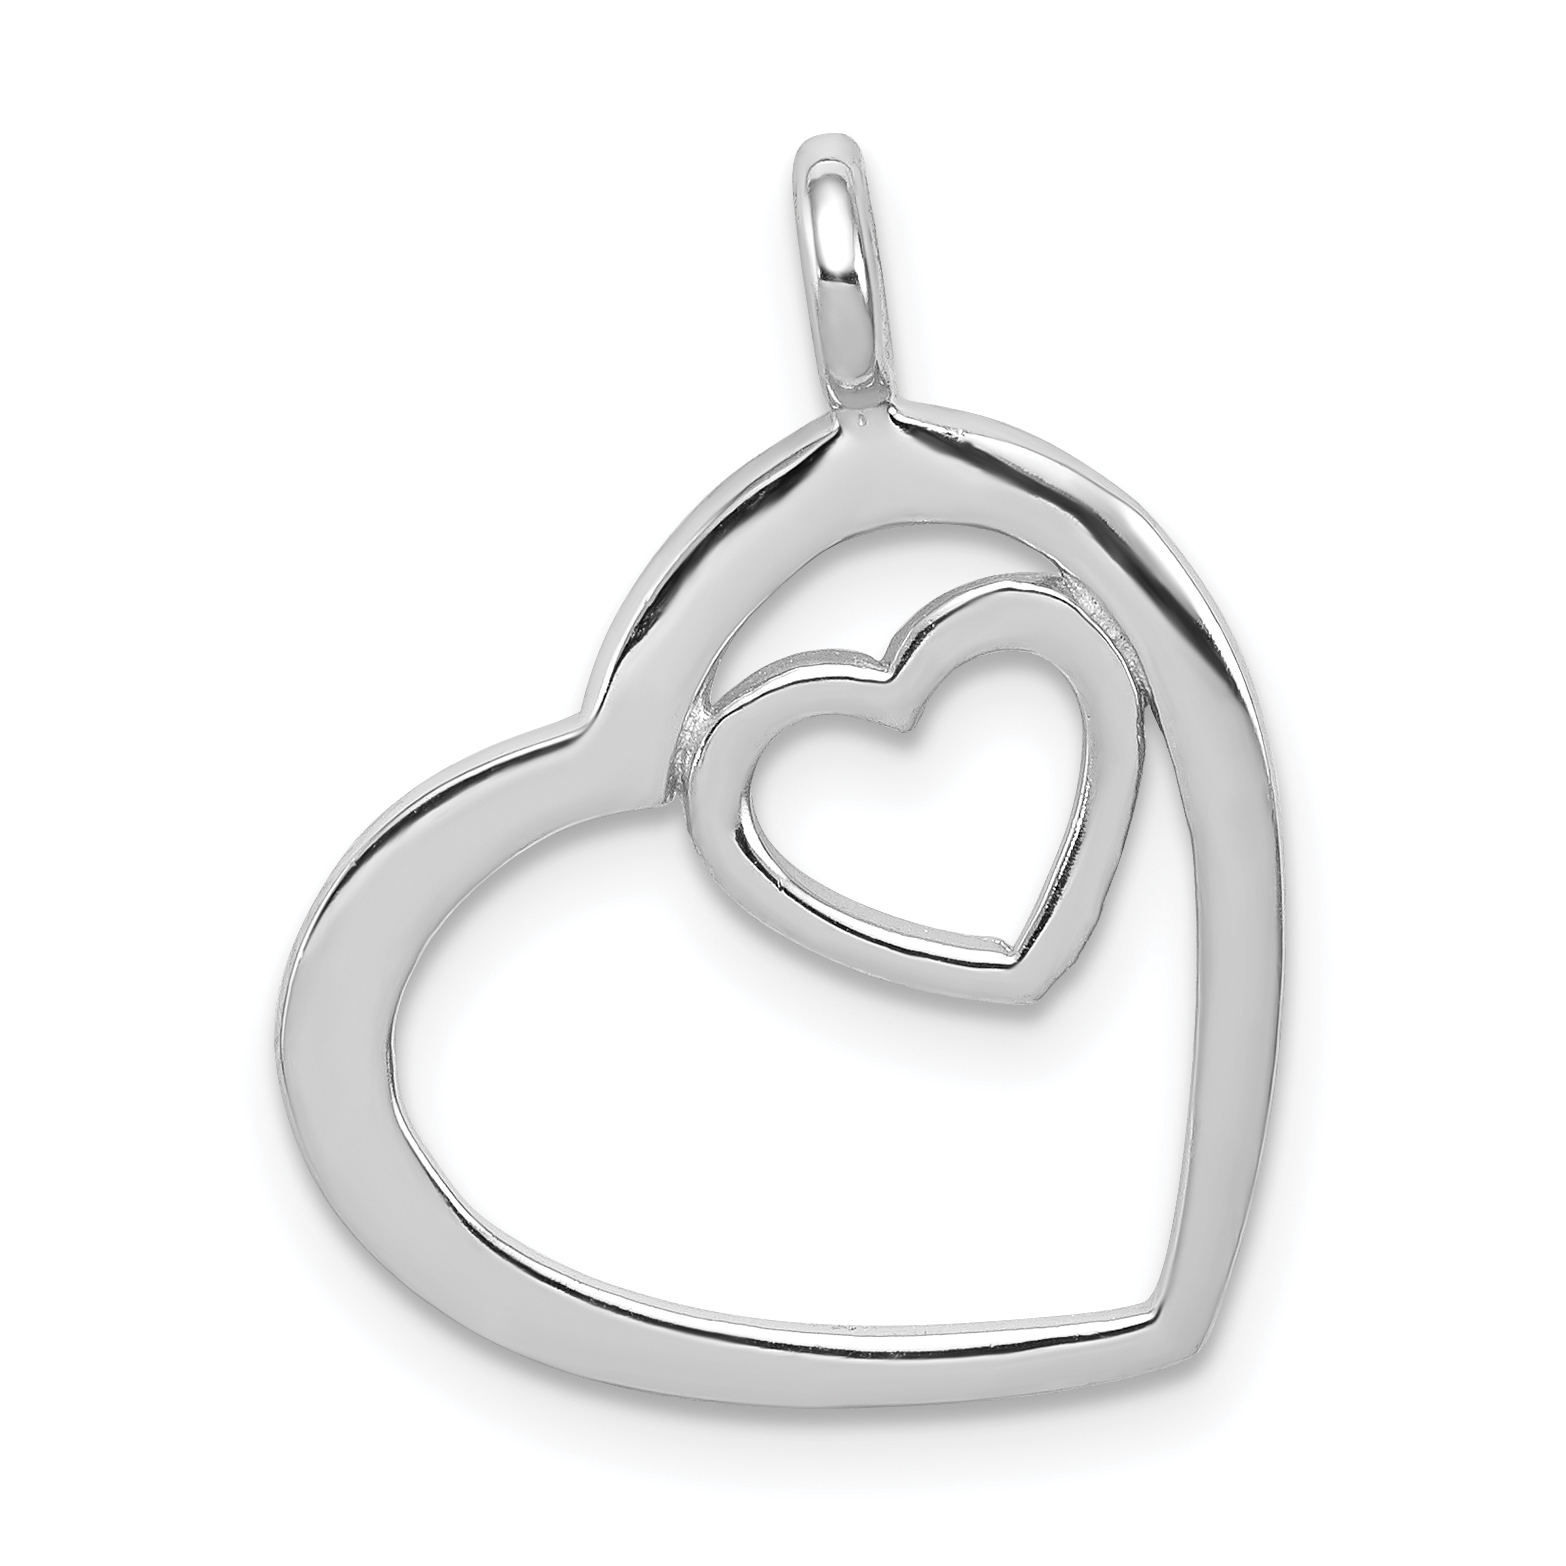 925 Sterling Silver Heart Pendant Charm Necklace Love Multiple Fine Jewelry Gifts For Women For Her - image 6 de 6